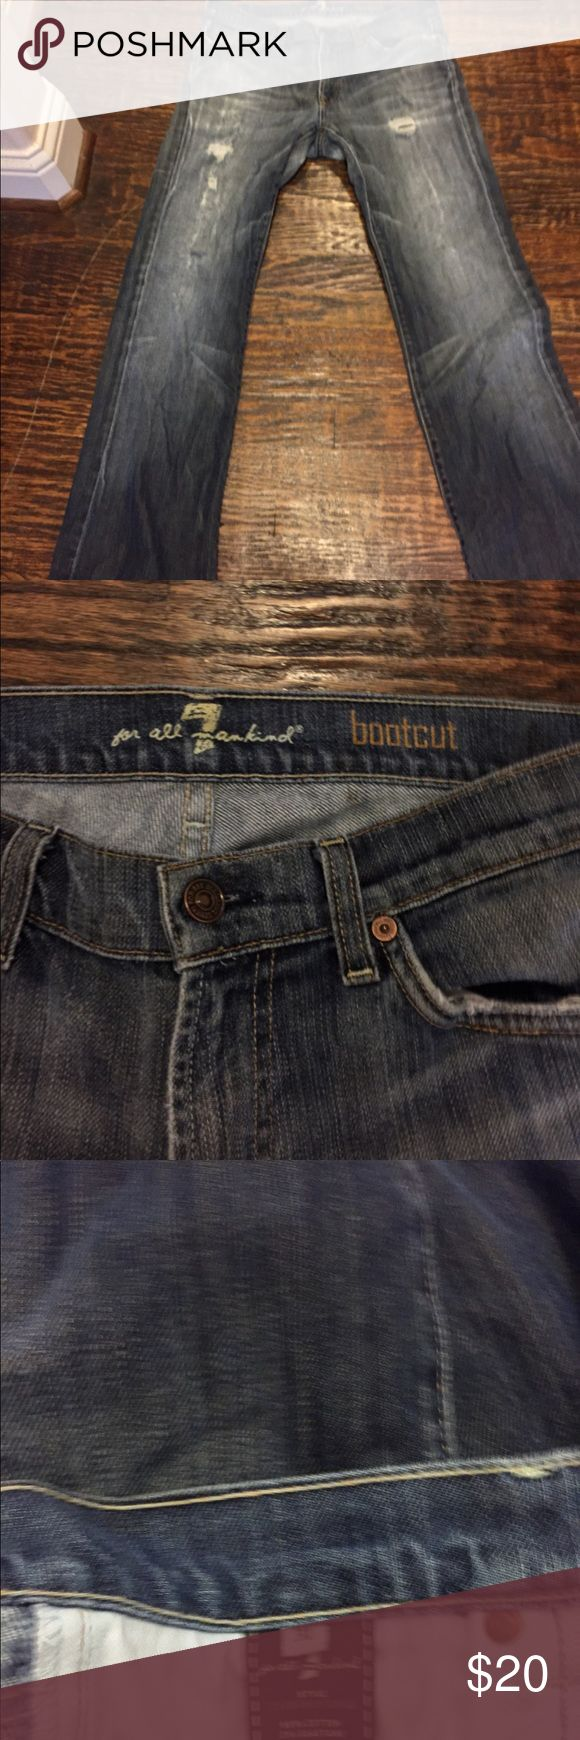 """Men's 7 for all mankind distressed bootcut jeans 7 for all mankind men's bootcut jeans.  Inseam:  30"""", patched in crotch area. 7 For All Mankind Jeans"""